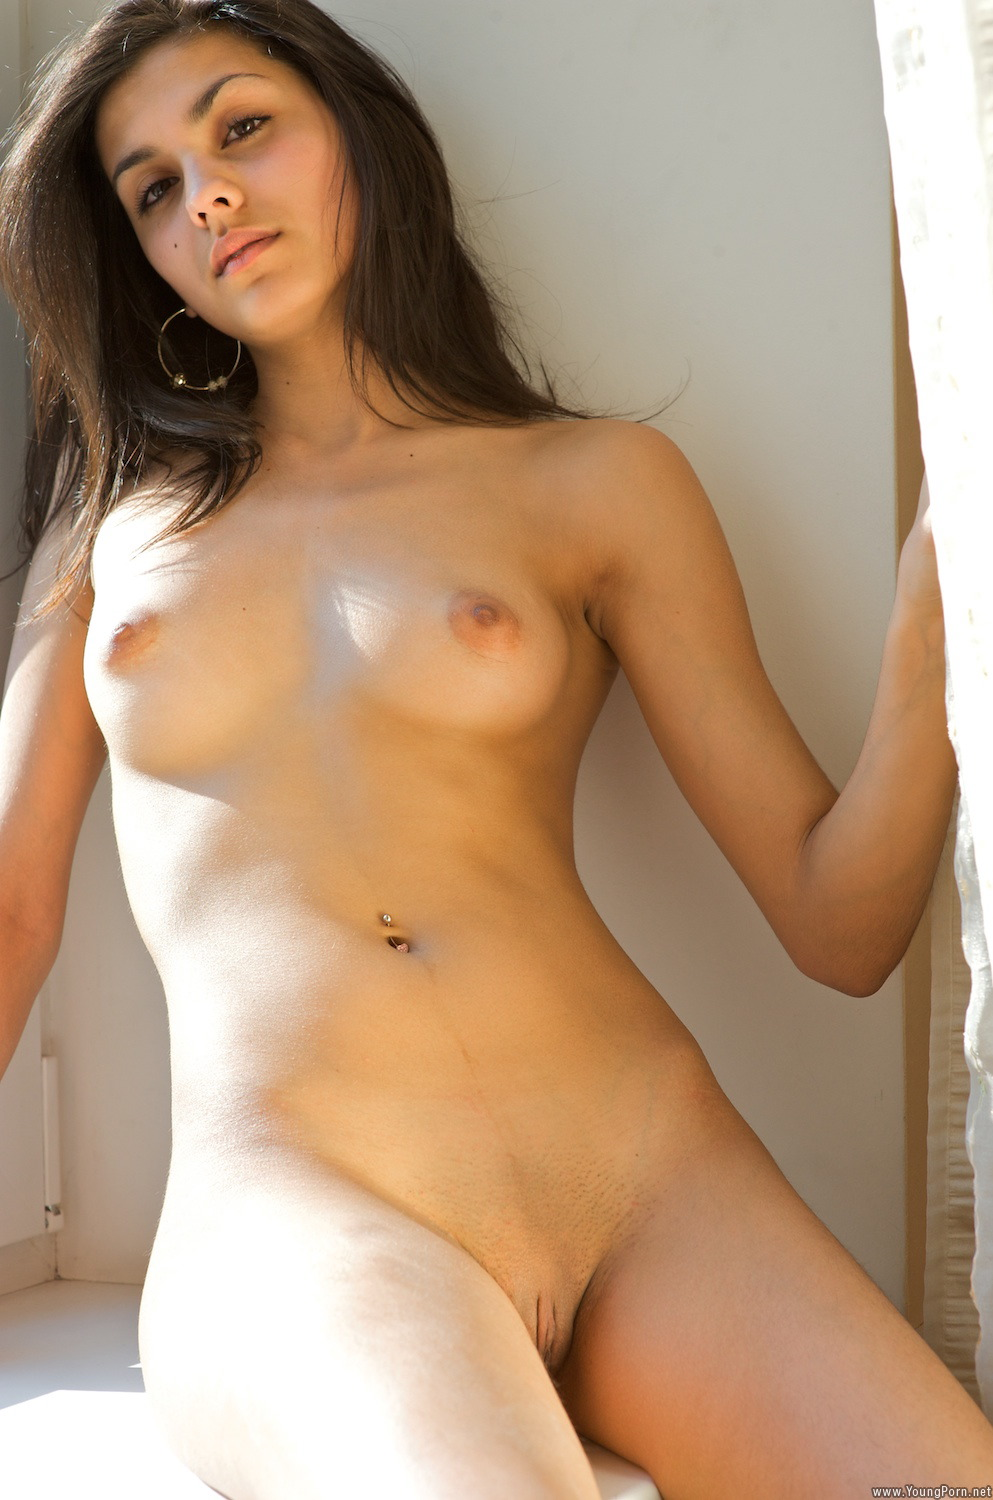 Hot naked women galleries